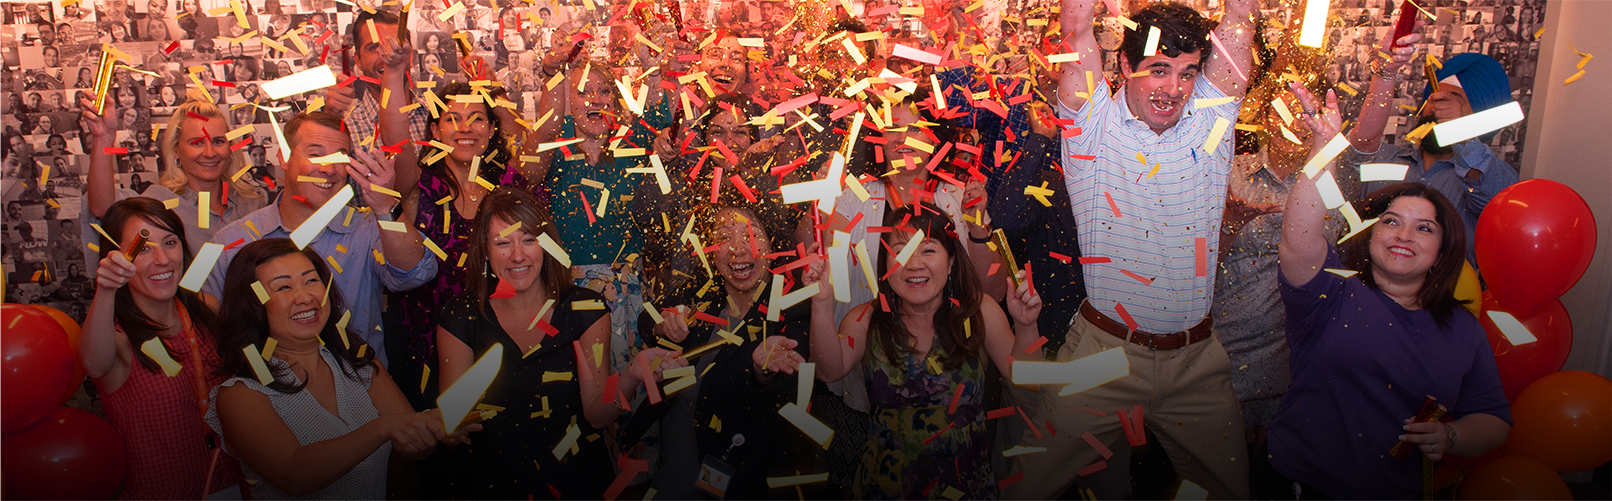 A large party with lots of confetti